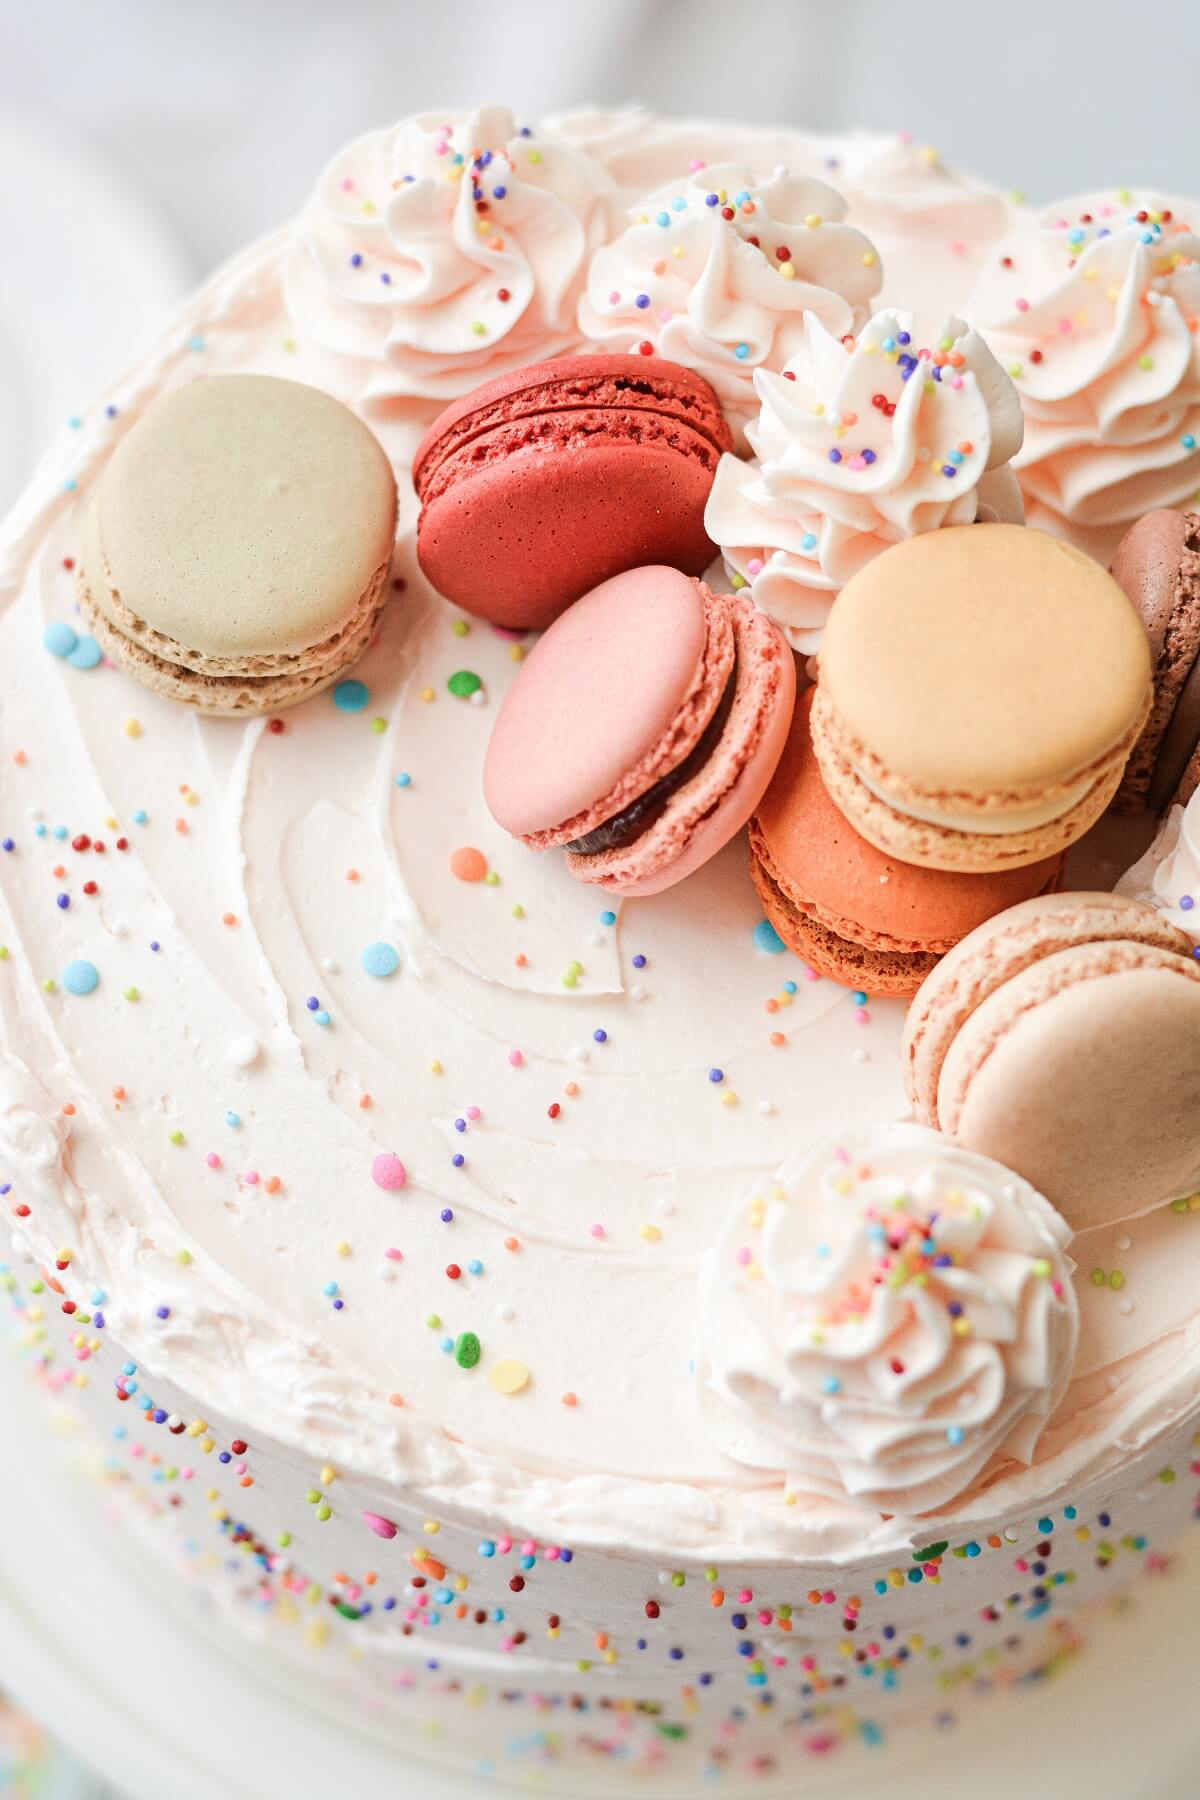 Funfetti cake topped with sprinkles and French macarons.